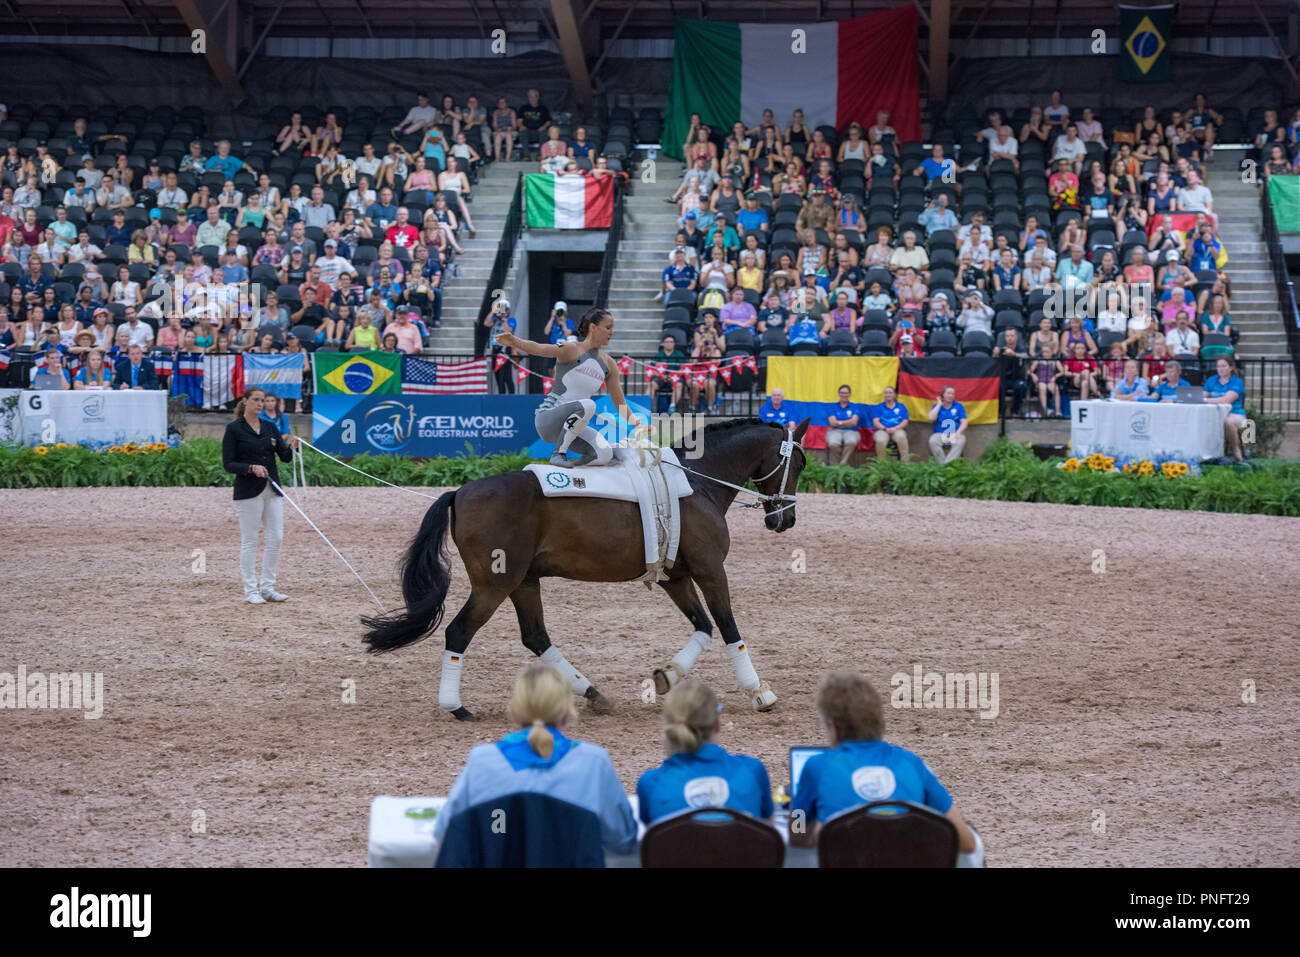 Mill Spring, NC. 20 Sep 2018. FEI WEG Tryon 2018 Continues with Jumping and Vaulting Competitions. - Stock Image